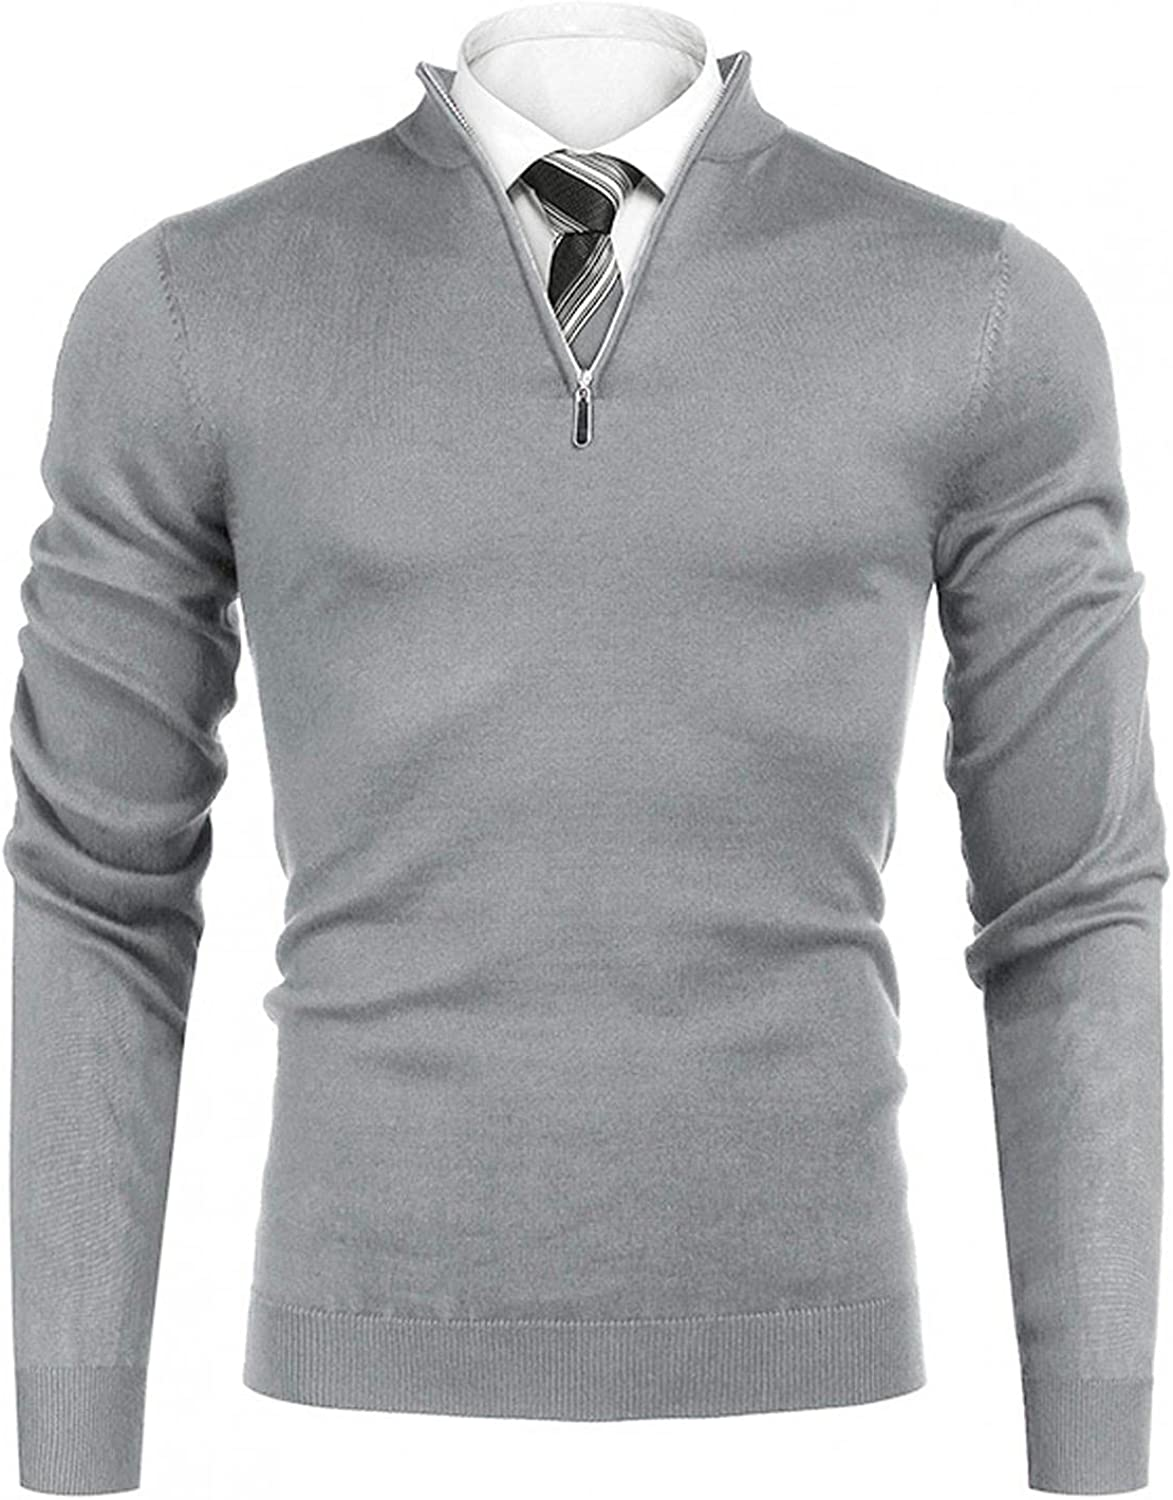 LEIYAN Mens Casual V Neck Sweater Quarter Zip Slim Fit Long Sleeve Shawl Collar Cable Knit Jumper Pullover Tops